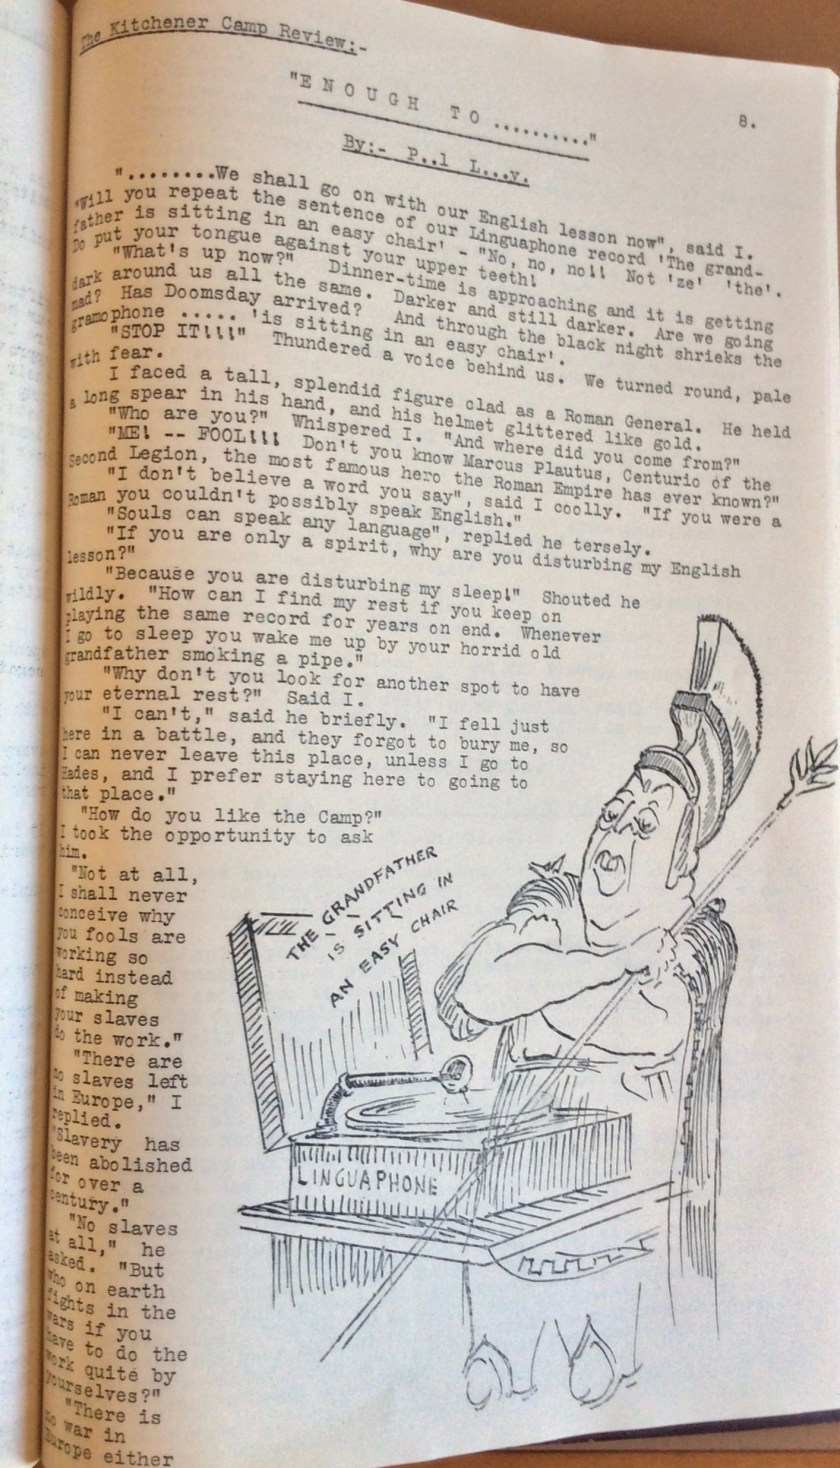 The Kitchener Camp Review, August 1939, page 8